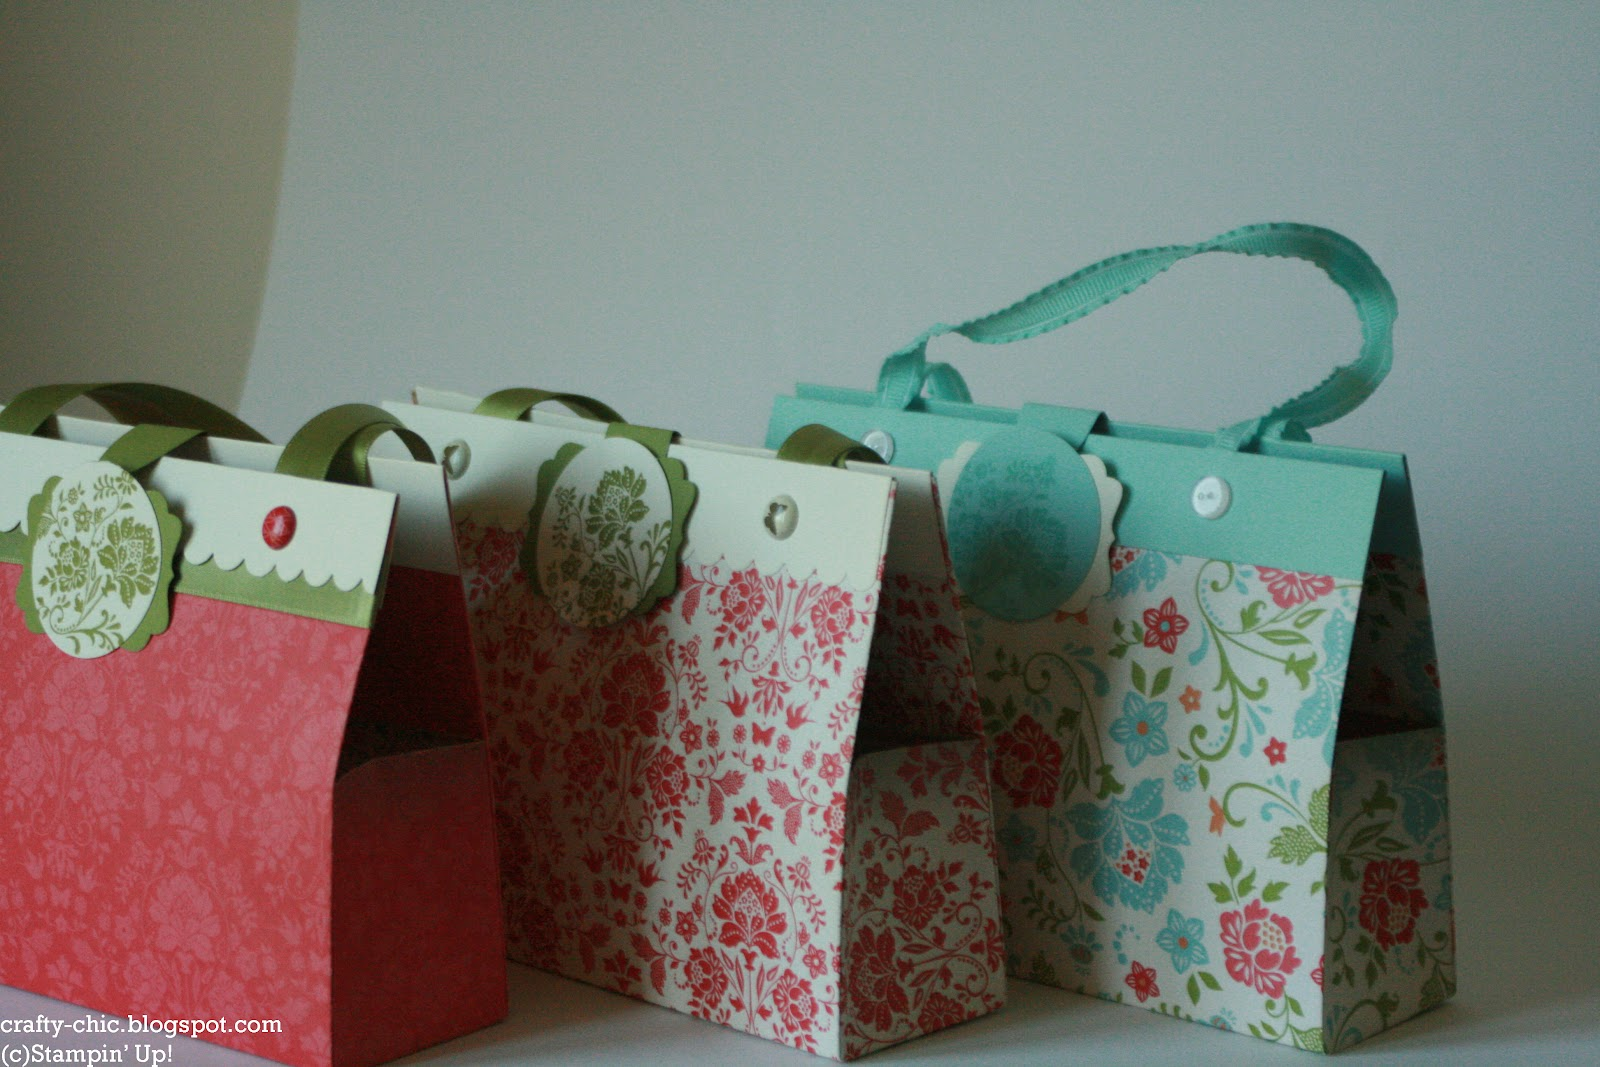 Handbags made from paper